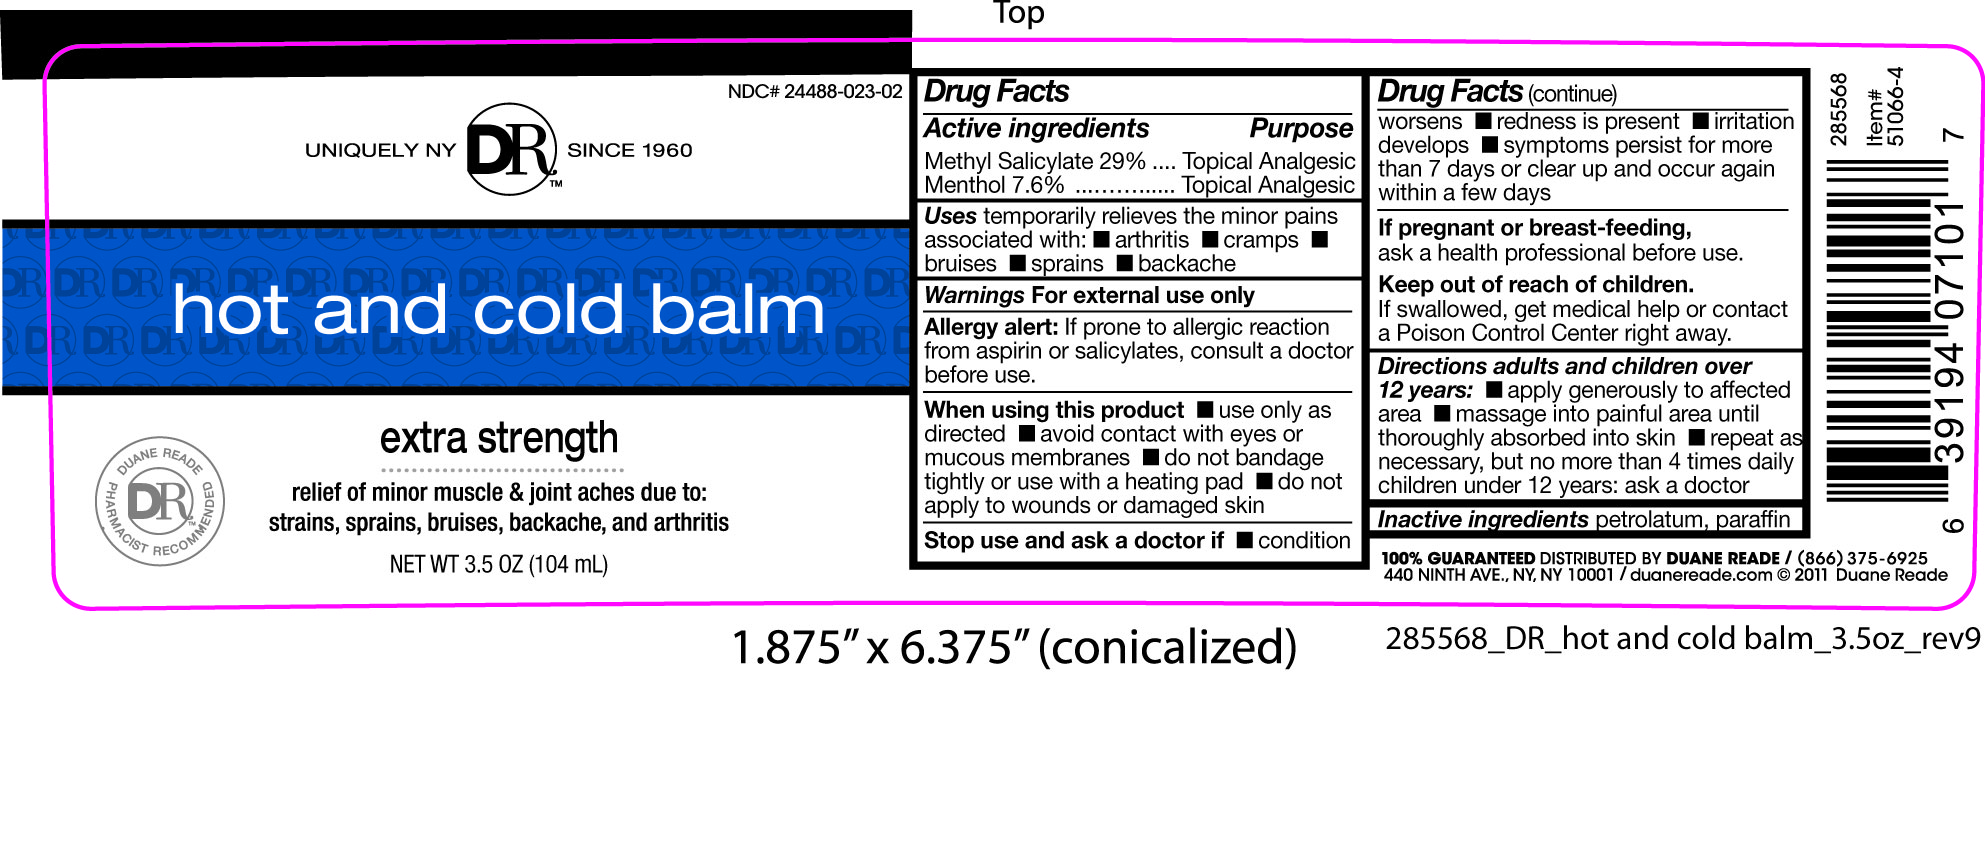 Duane Reade Hot And Cold Balm (Methyl Salicylate And Menthol) Salve [Duane Reade]